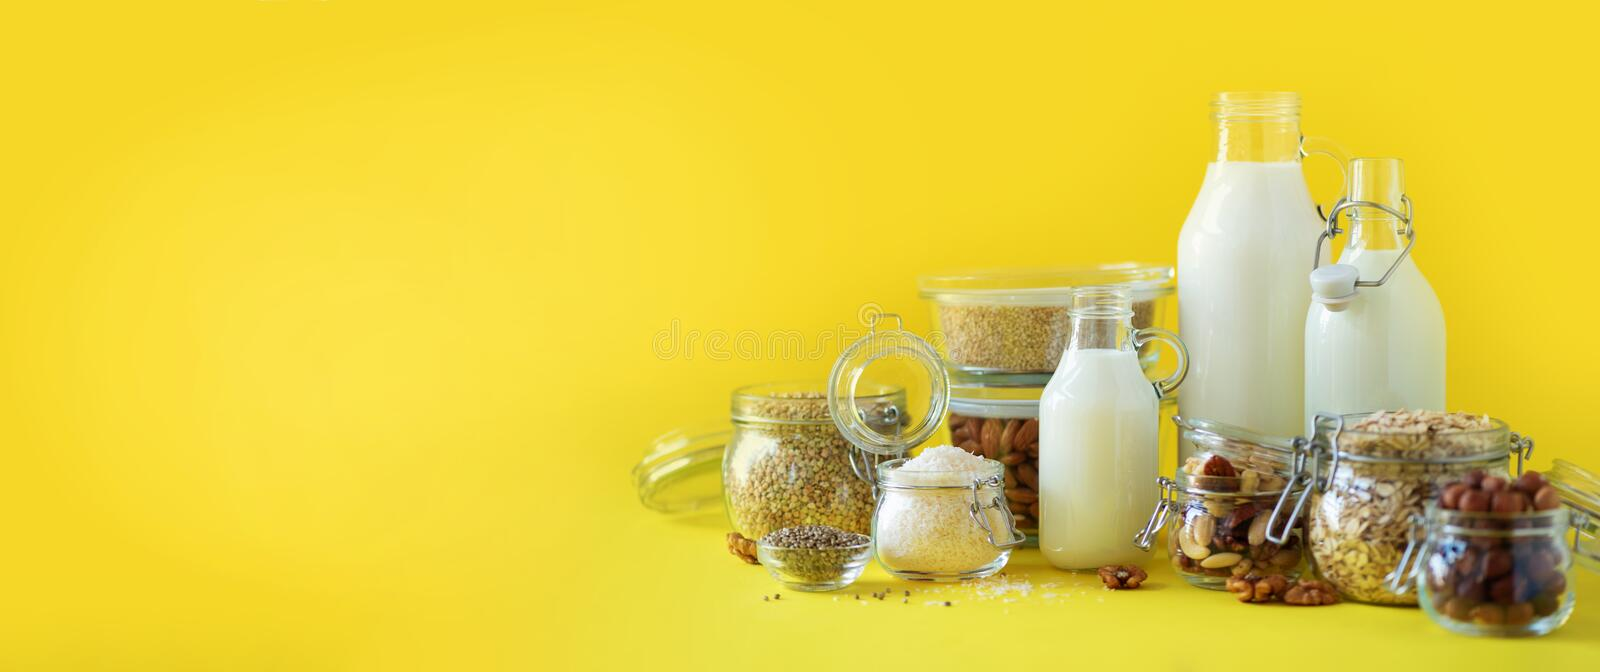 Glass bottles of vegan plant milk and almonds, nuts, coconut, hemp seed milk on yellow background. Banner with copy space. Dairy. Free milk substitute drinks royalty free stock photography